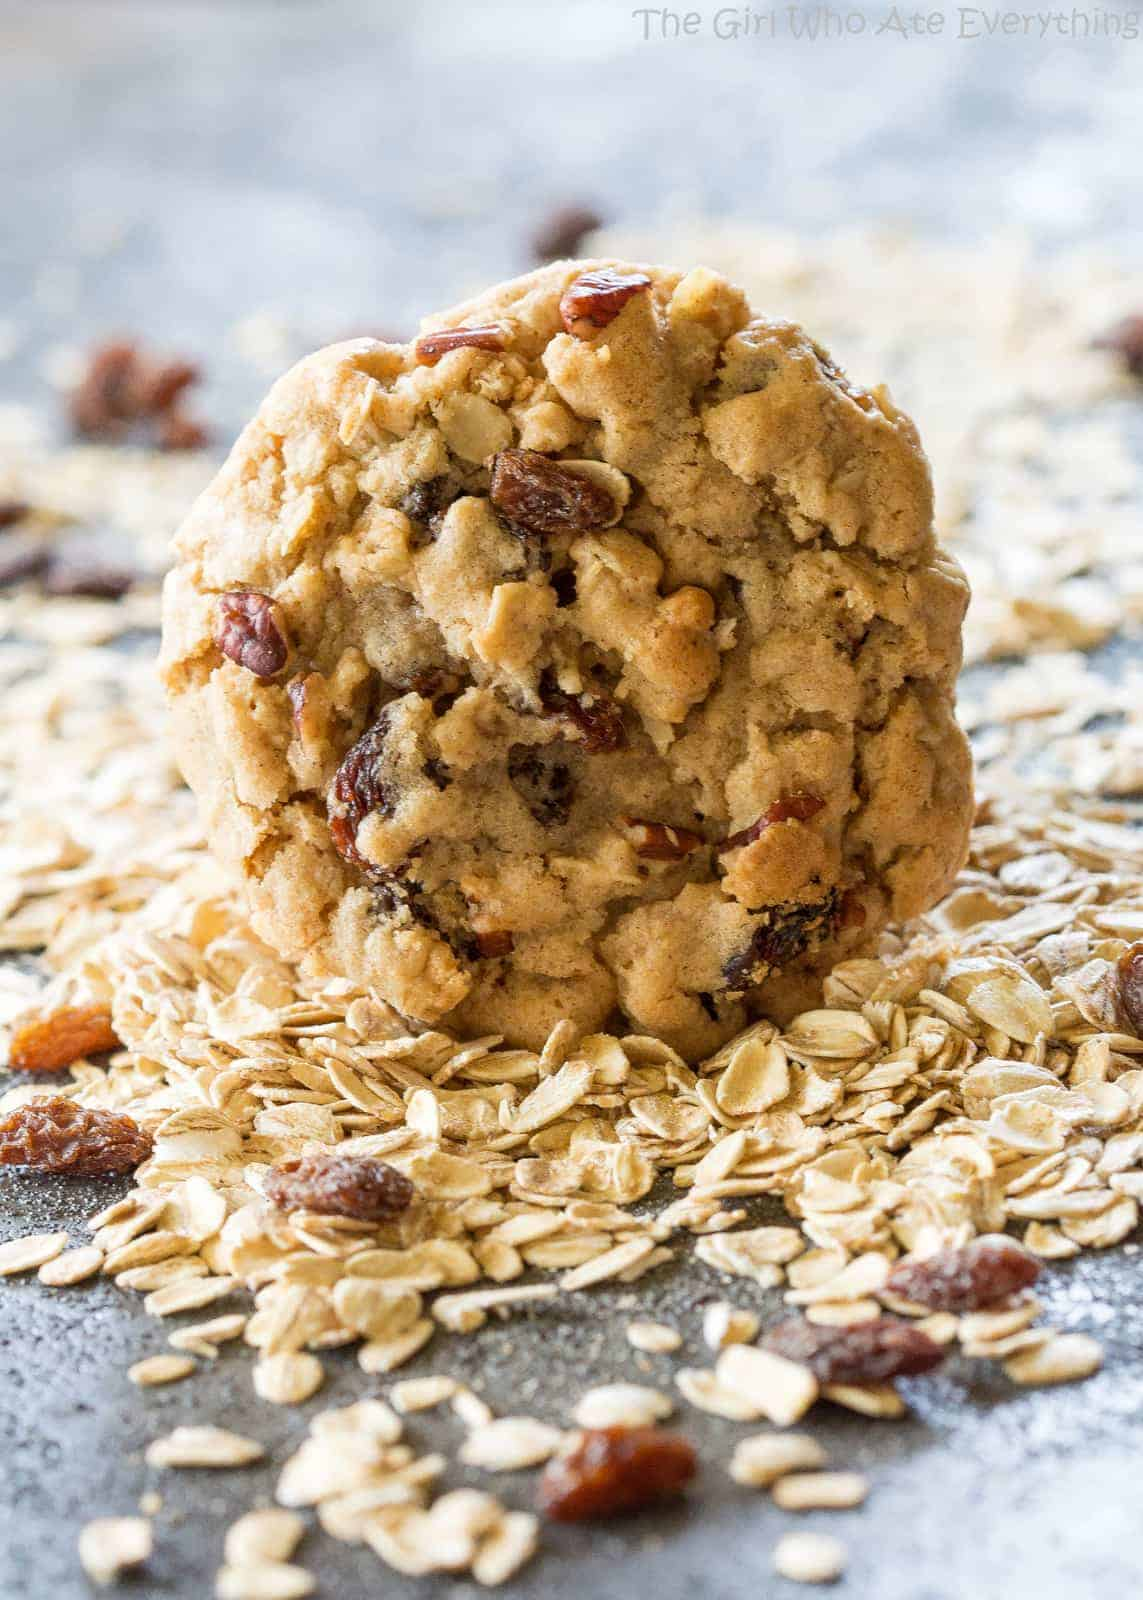 Chewy Oatmeal Raisin Cookie in a pile of oats and raisins